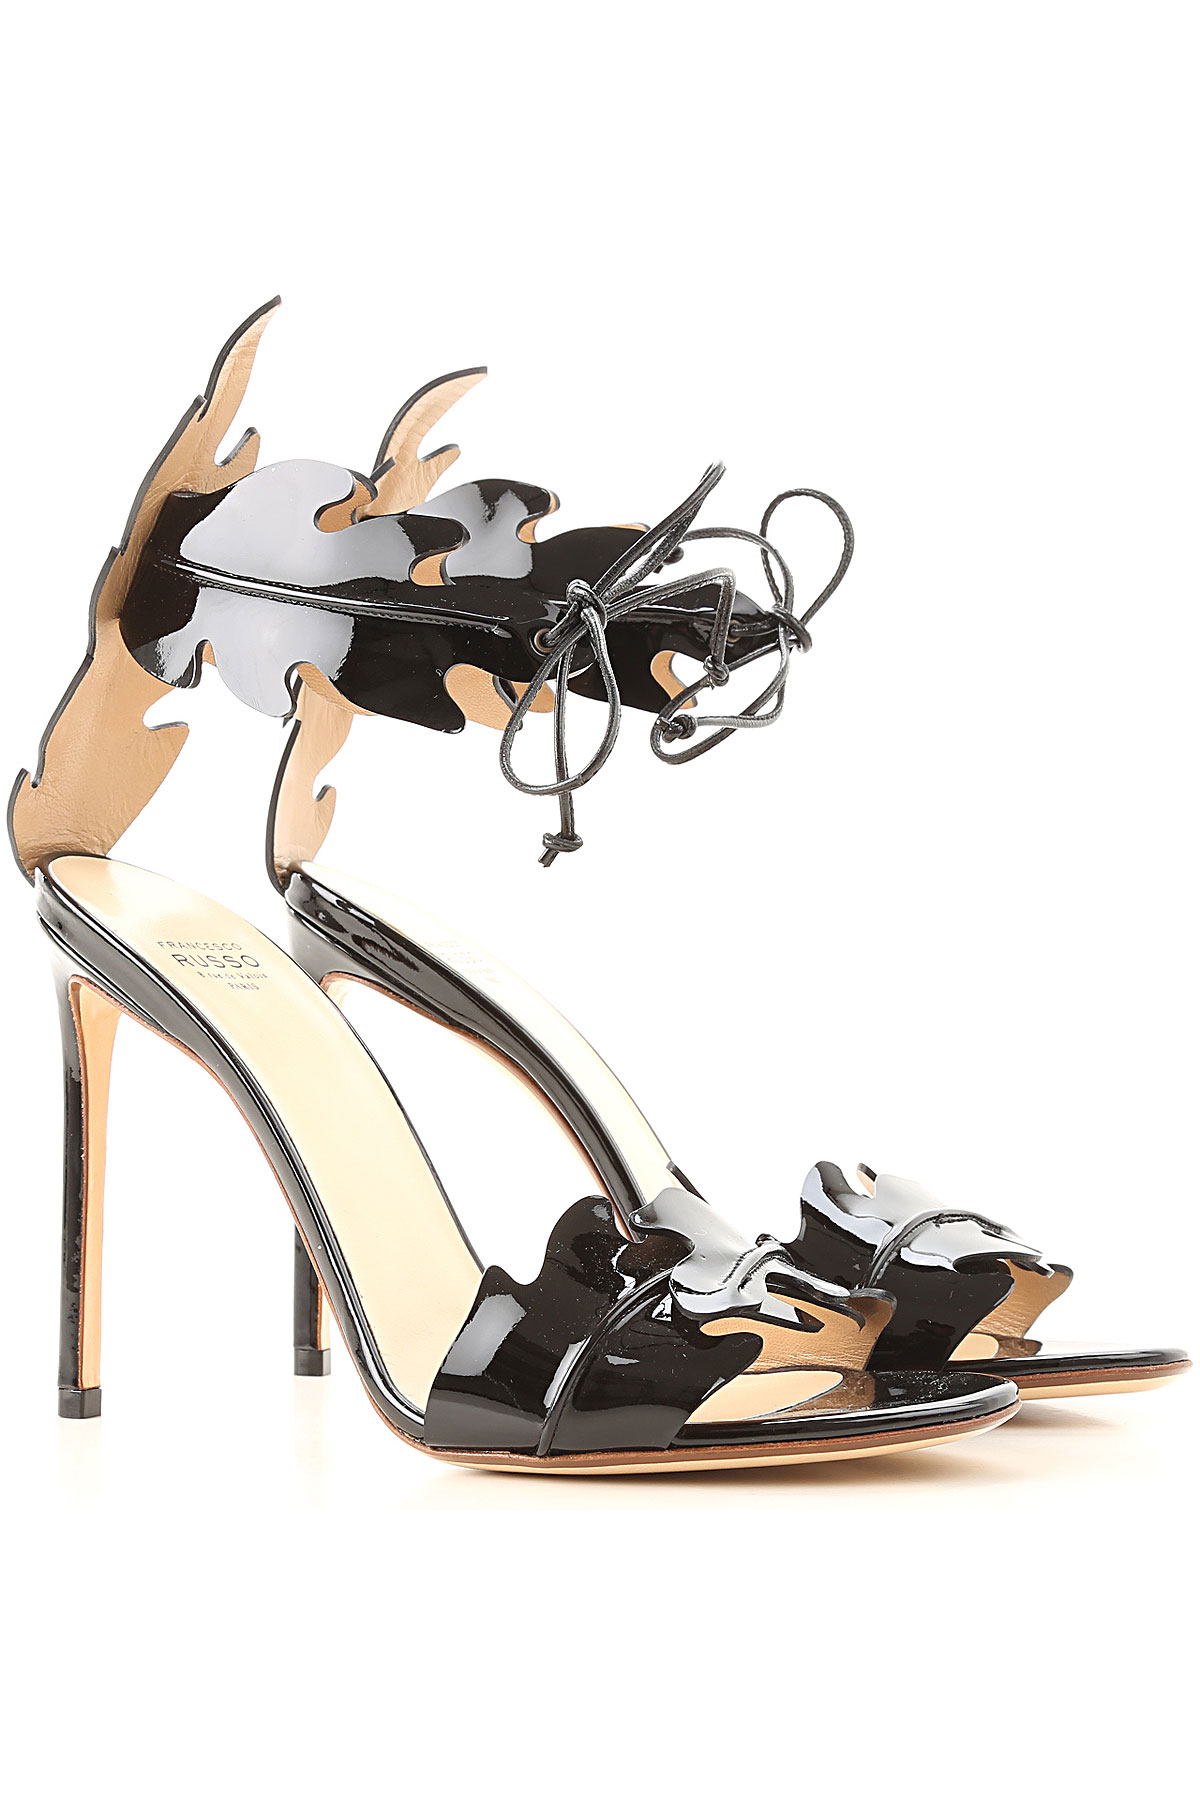 Francesco Russo Sandals for Women On Sale in Outlet, Black, Patent Leather, 2019, 8.5 9 9.5